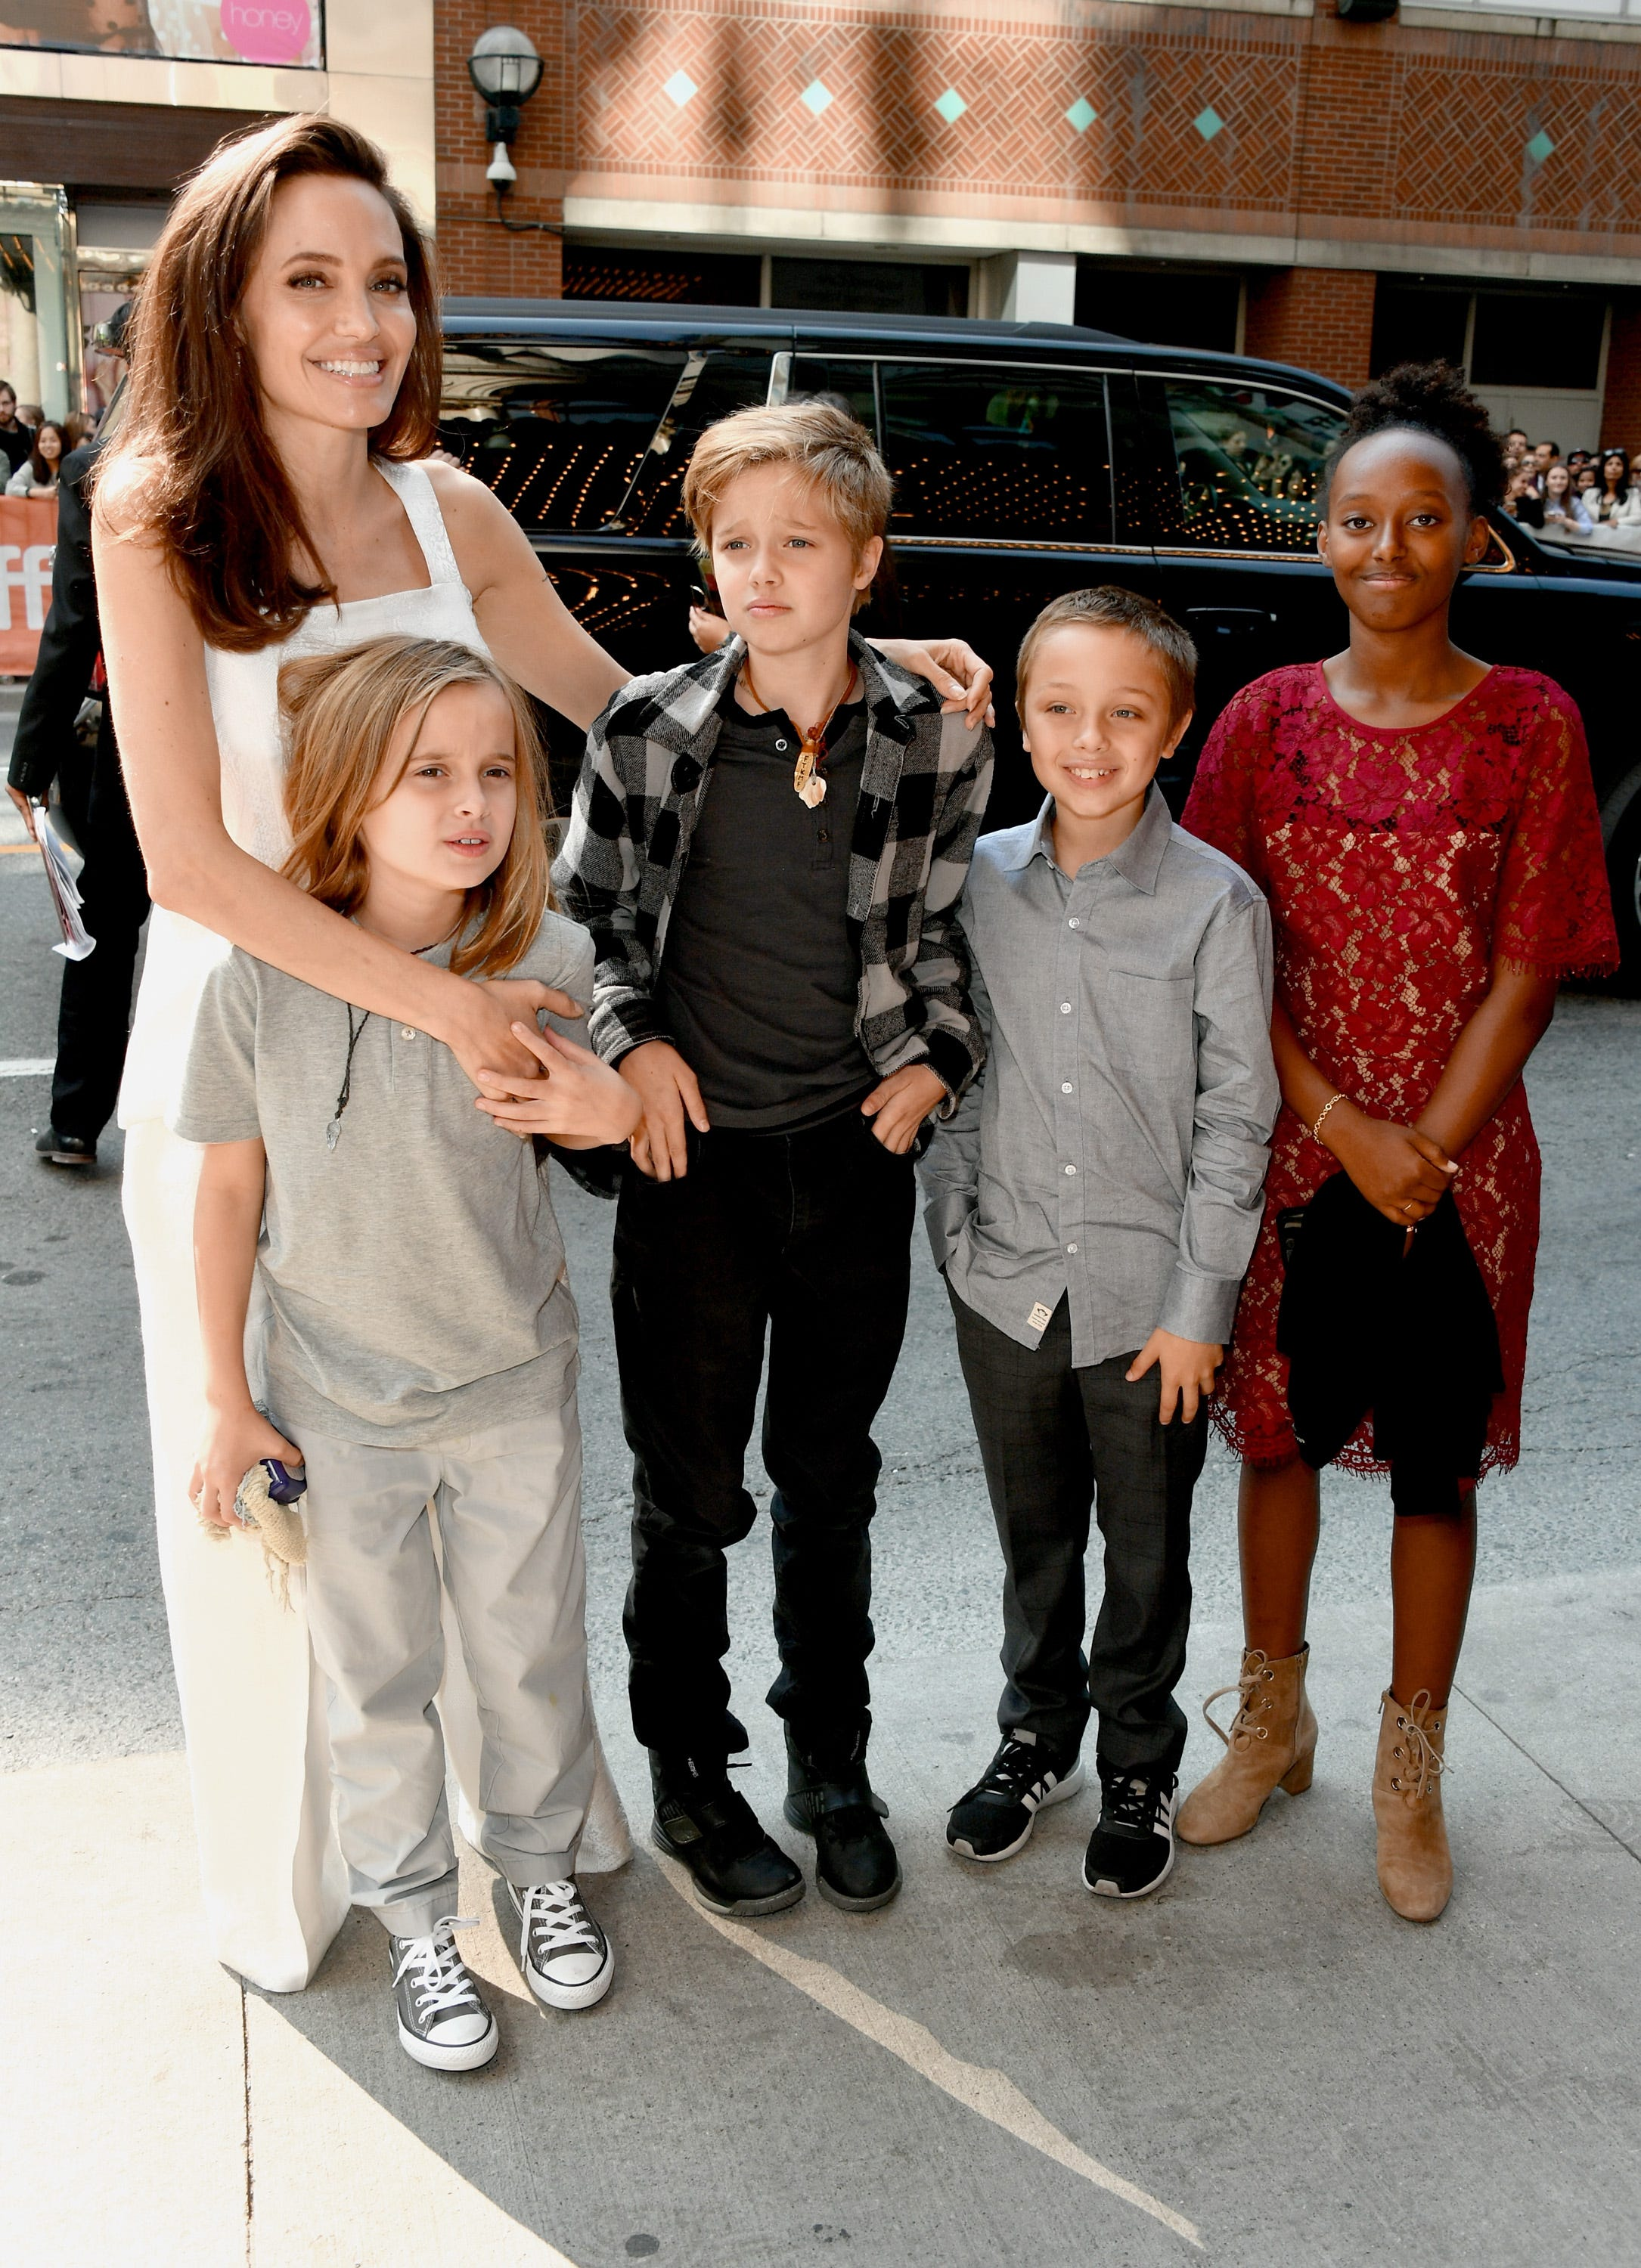 Angelina Jolie brings her kids (and her flowy pants) to Toronto Film Festival